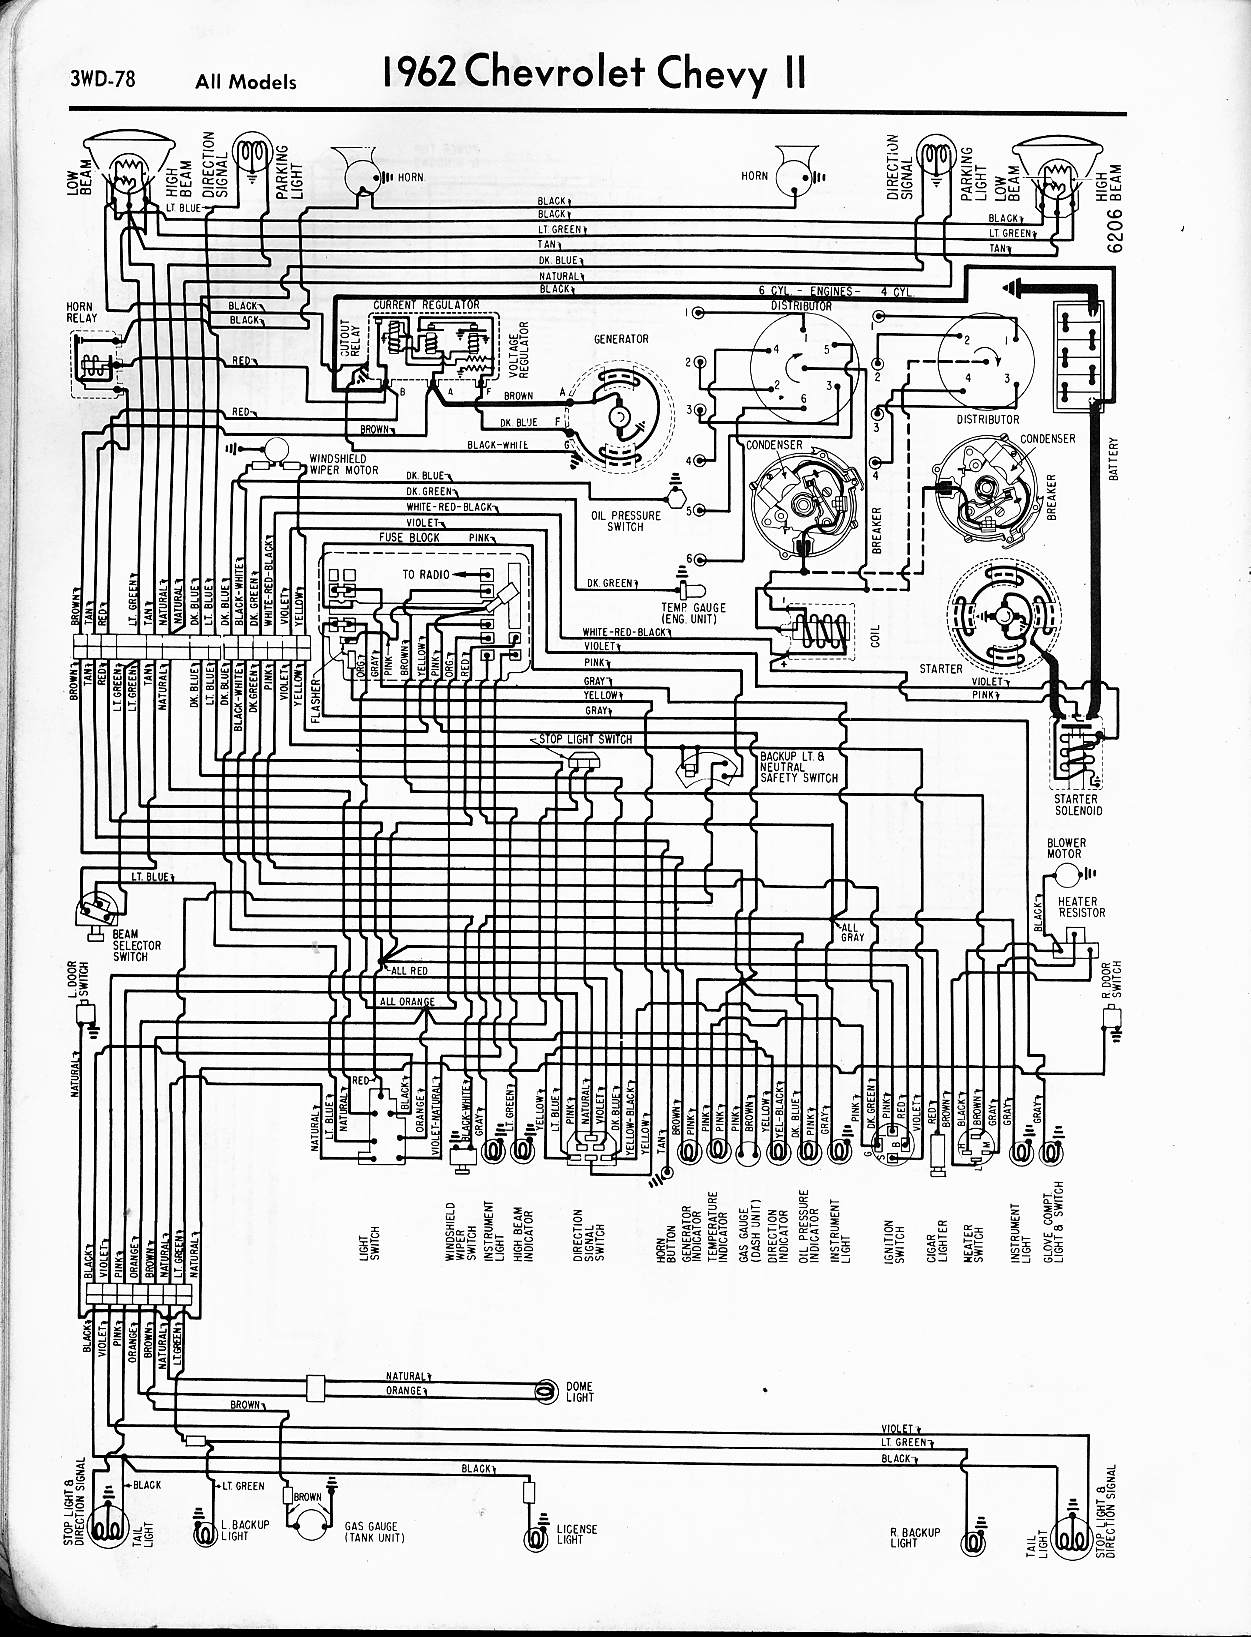 corvette wiper motor wiring diagram wiring diagram 68 camaro wiper motor wiring image wiper motor wiring please help chevy nova forum